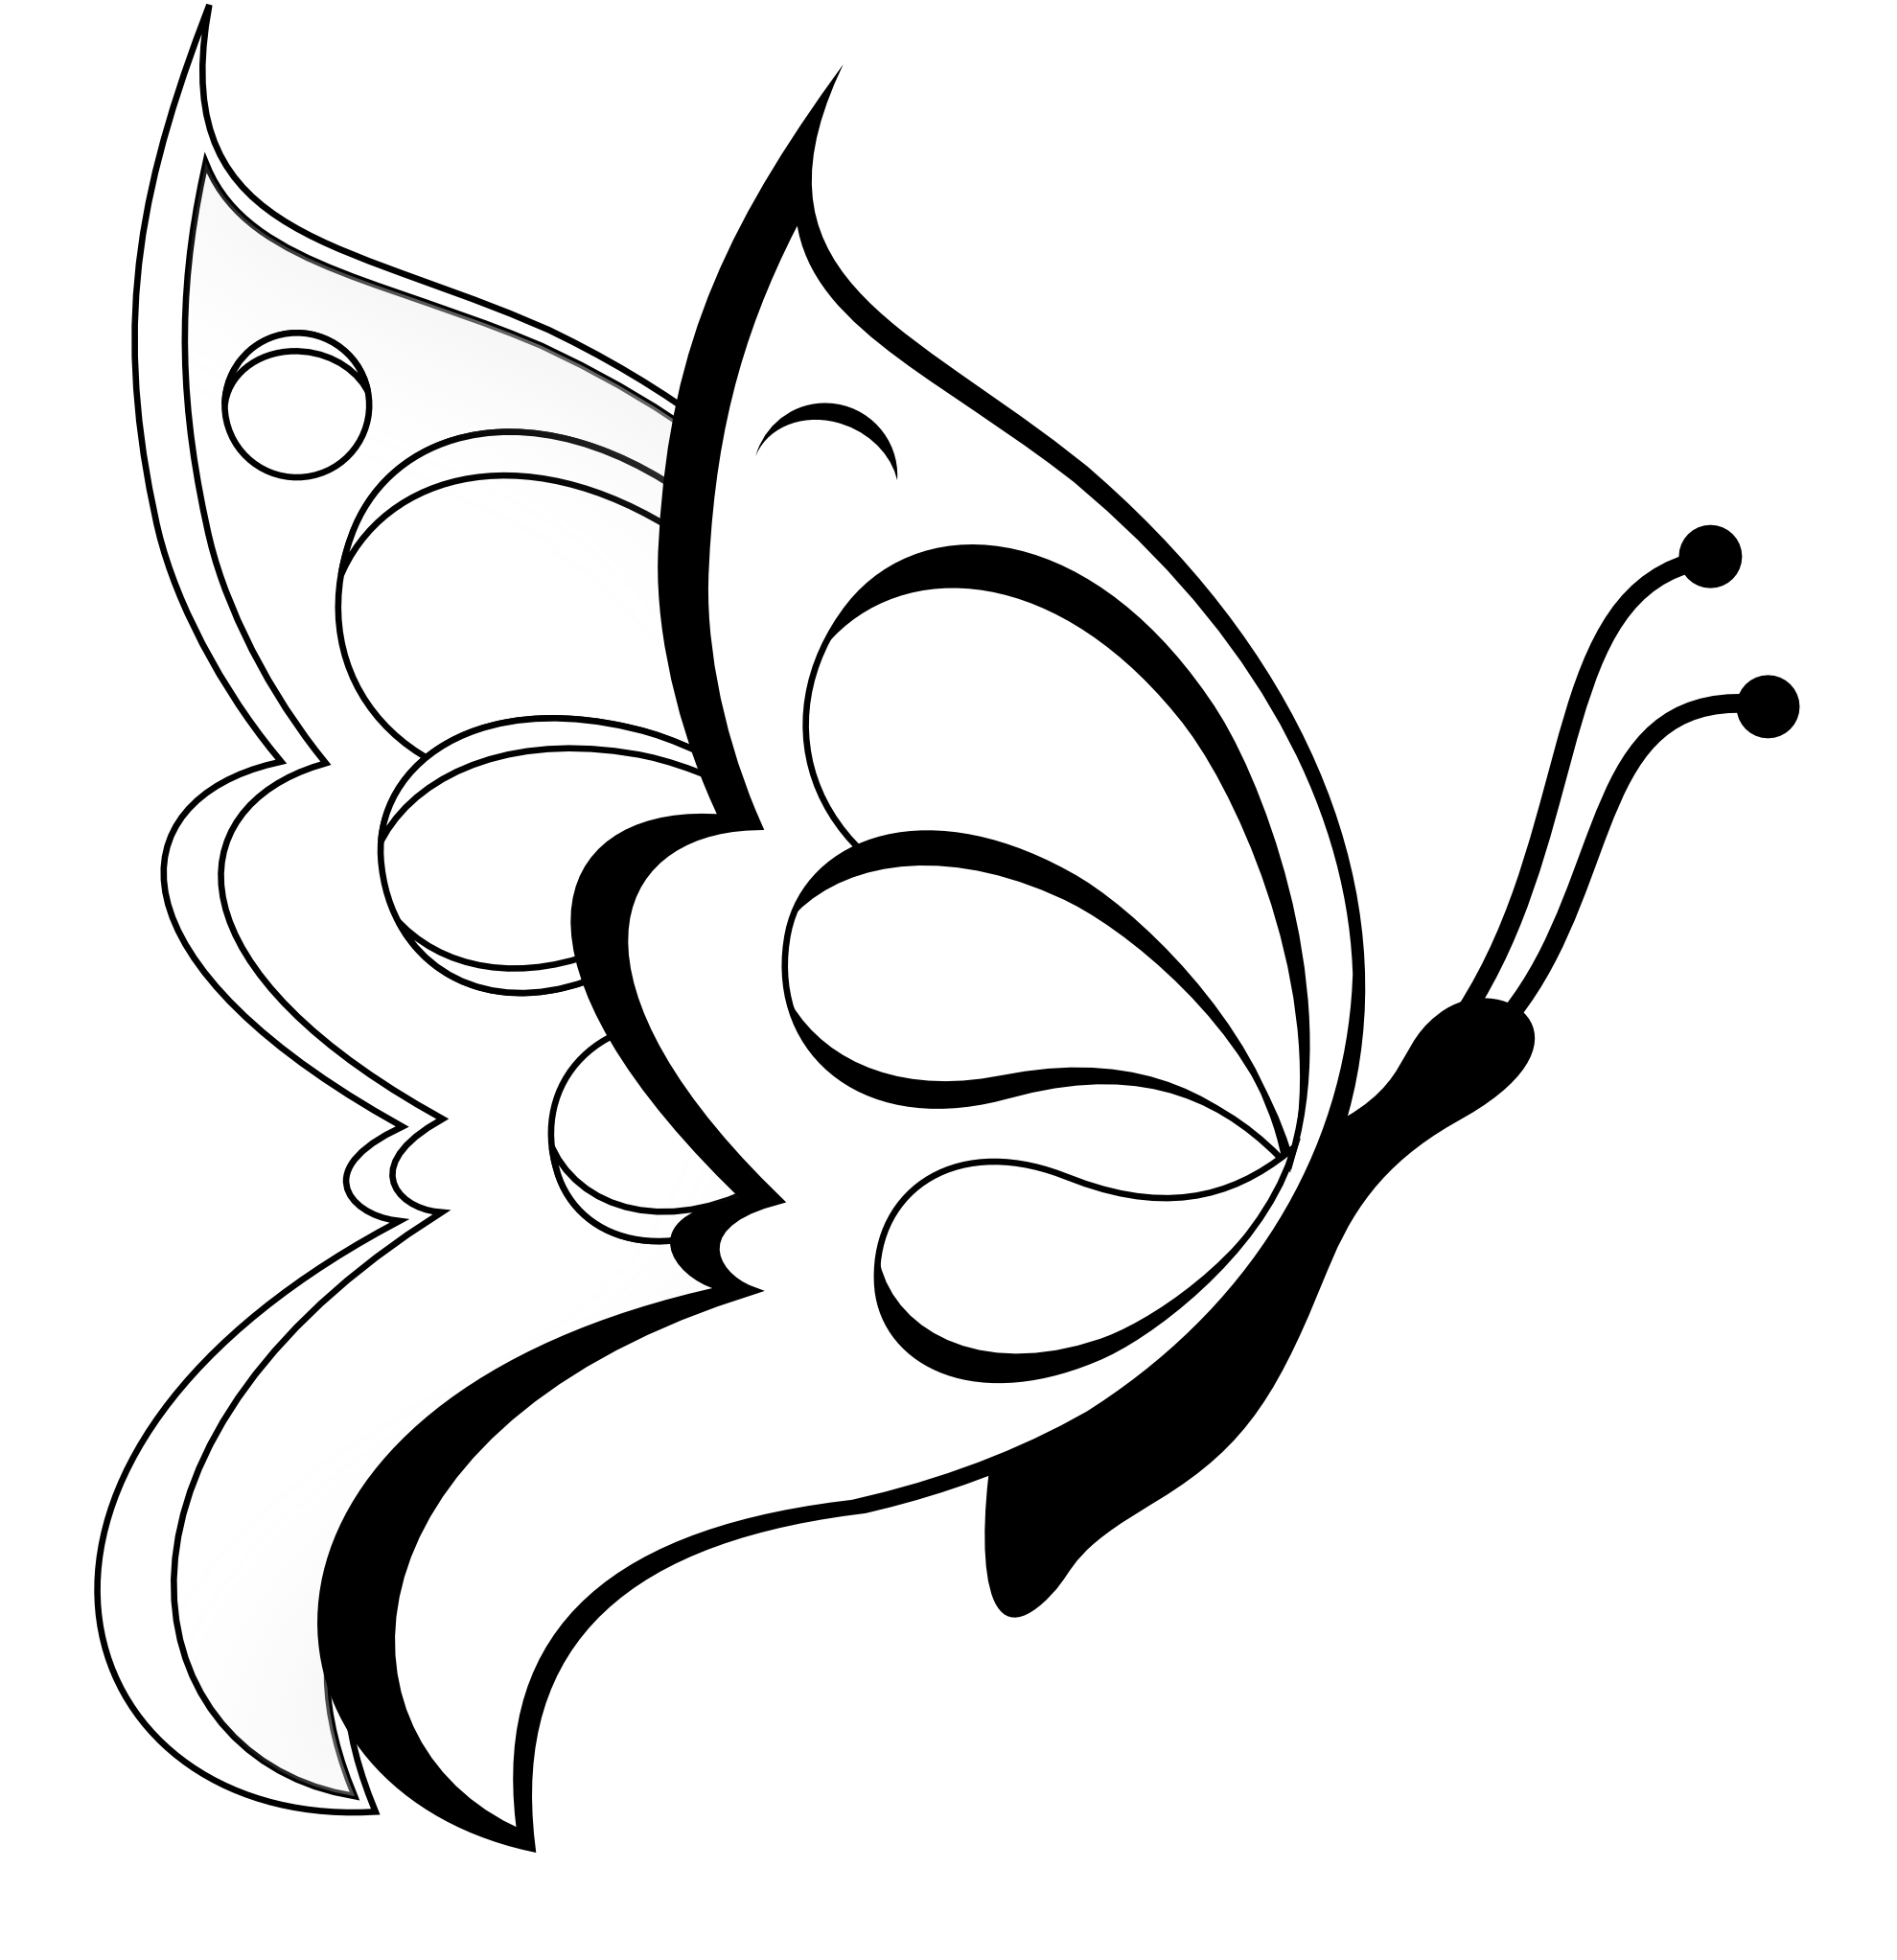 butterfly clipart butterfly 19 black white line art coloring sheet rh pinterest com black and white clip art flowers free black and white flower clipart swag